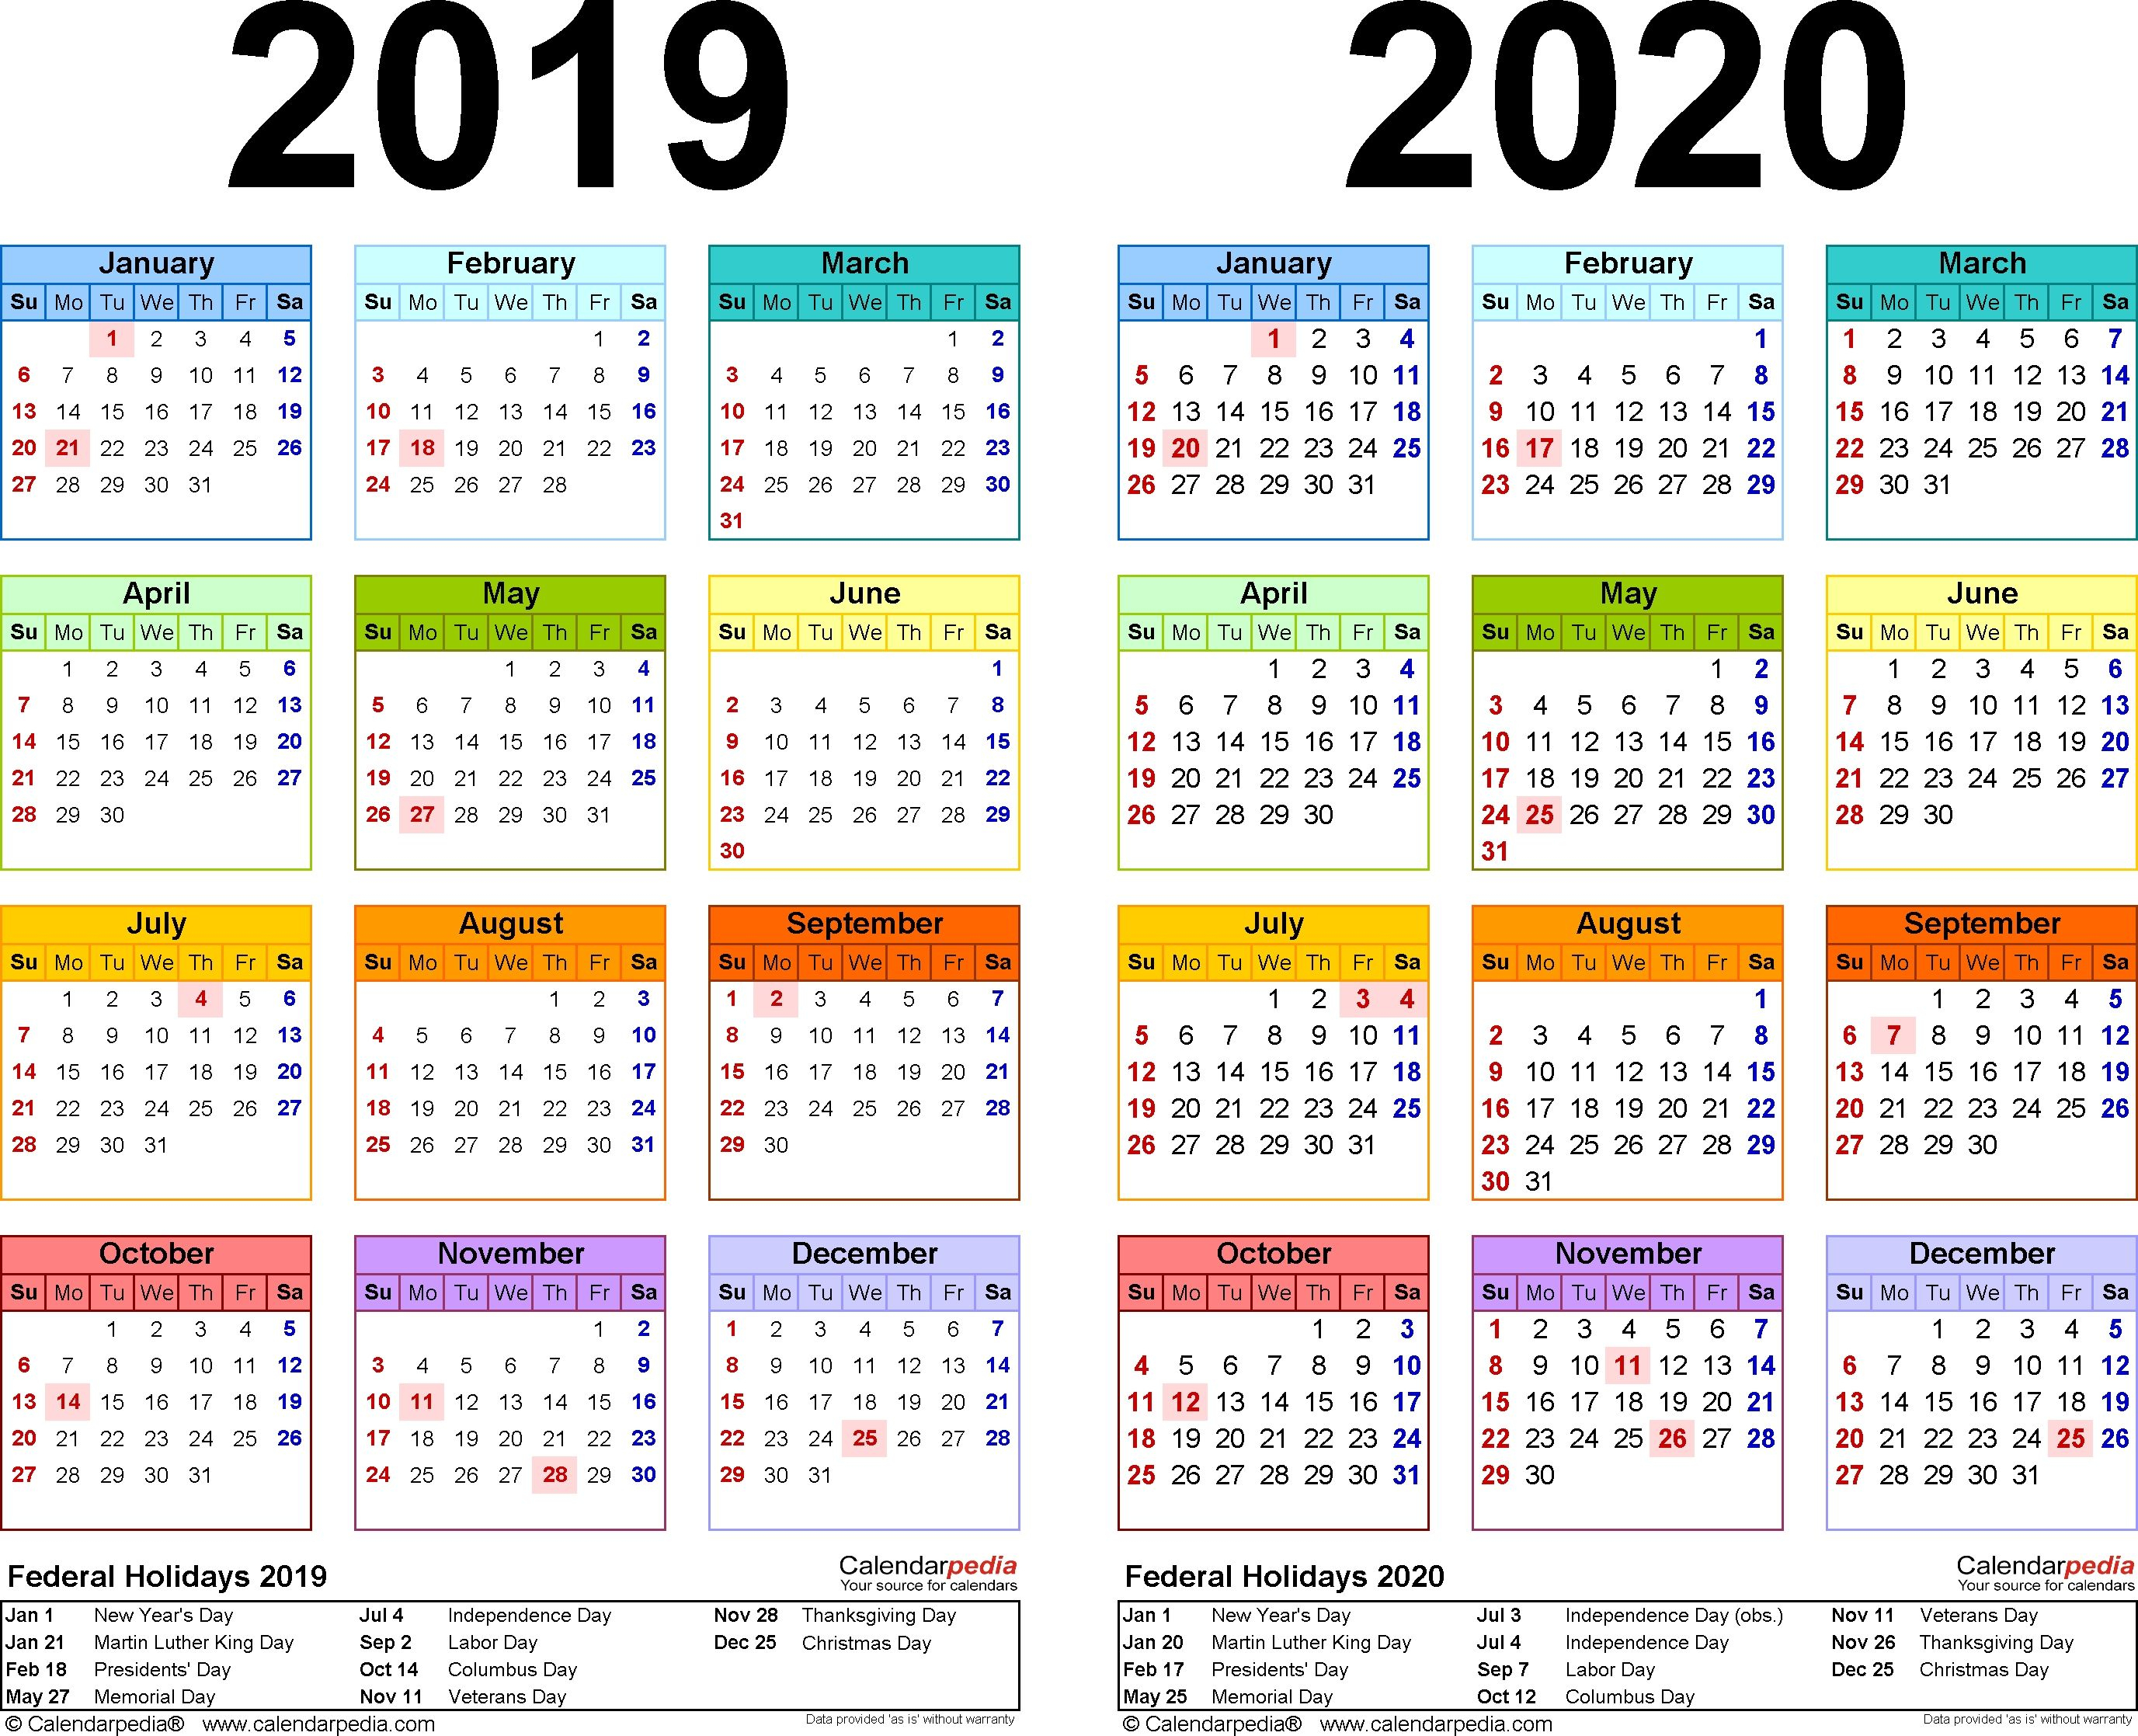 2019-2020 Calendar - Free Printable Two-Year Excel Calendars 2020 throughout 2020 Calendars To Fill In